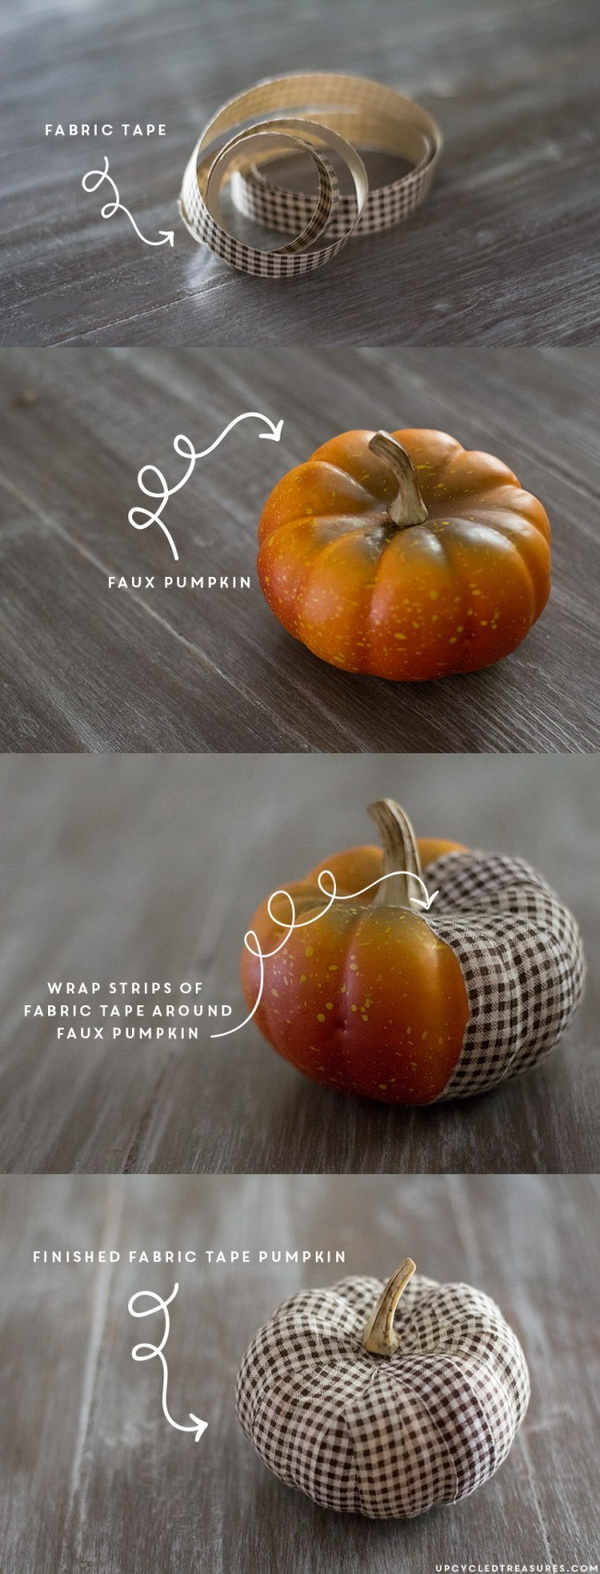 DIY Fabric Tape Pumpkins. Easy and fun fall crafts for kids!